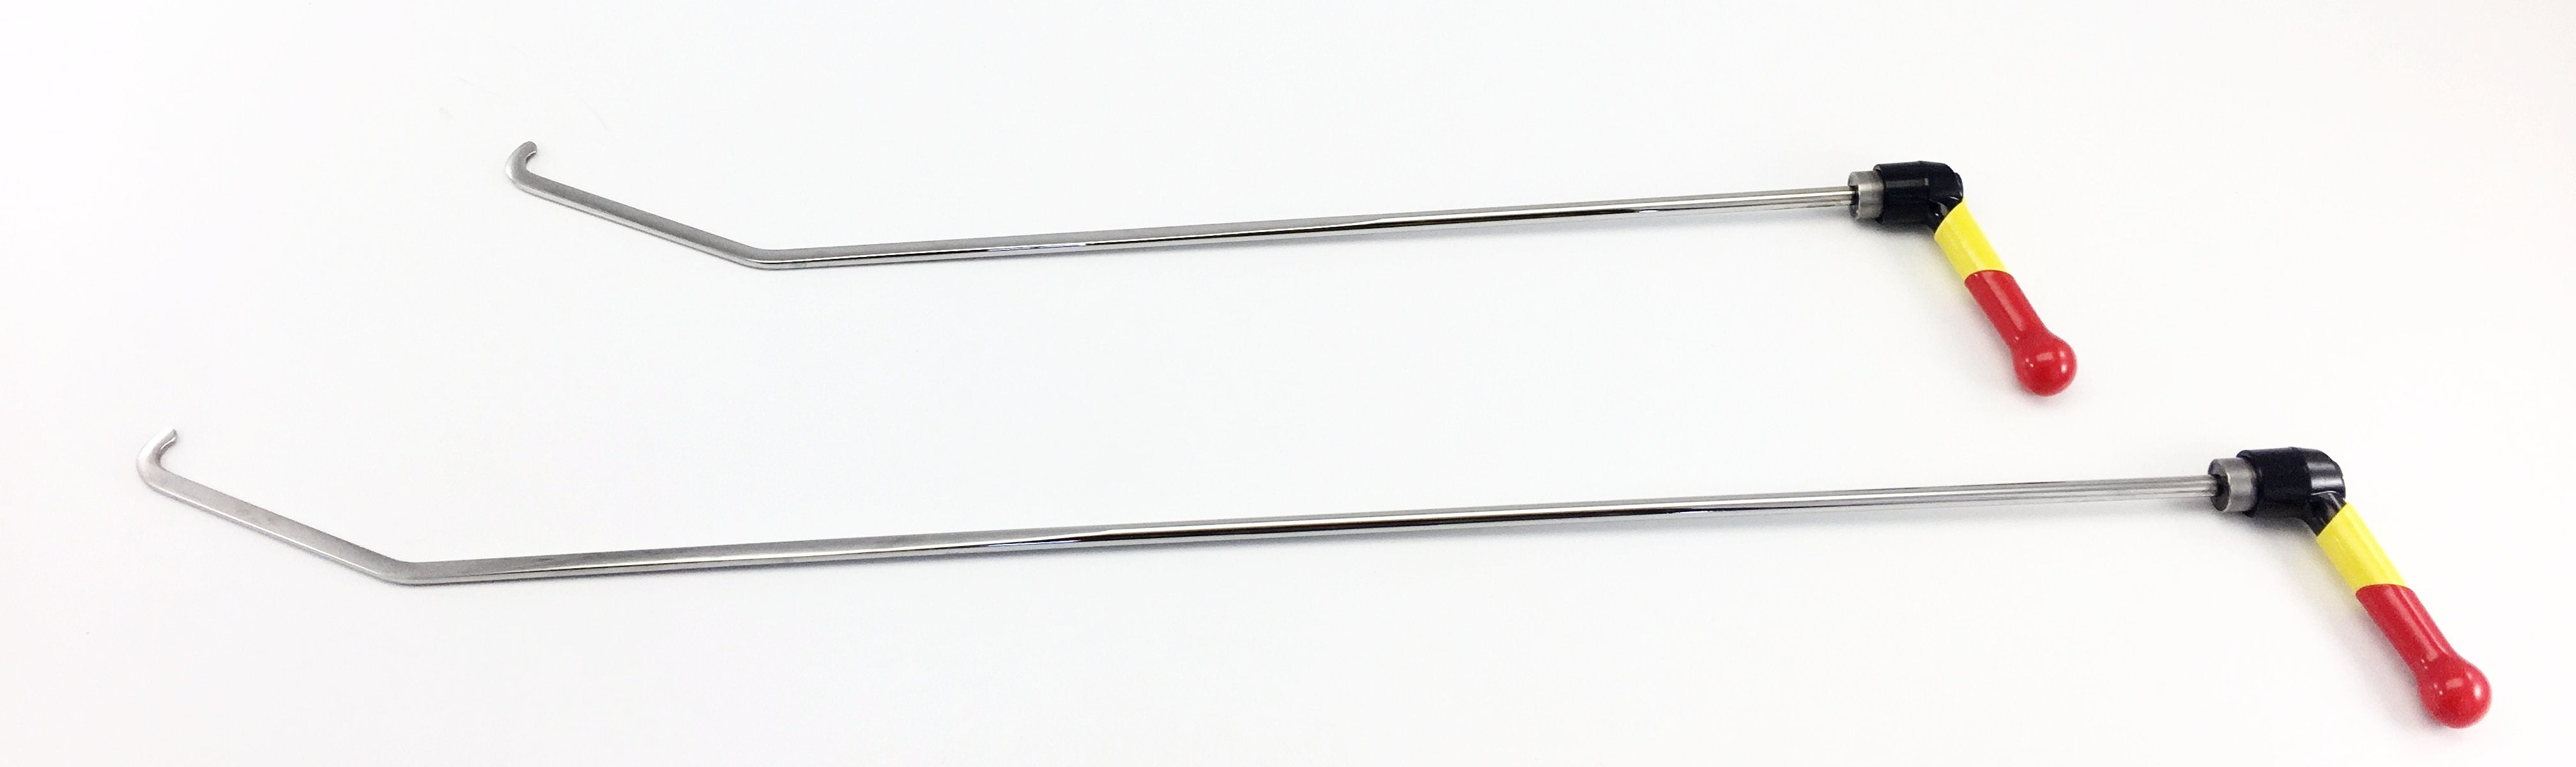 Stanliner Ratcheting Long Neck Set (SET-SADT-LN-RCT)